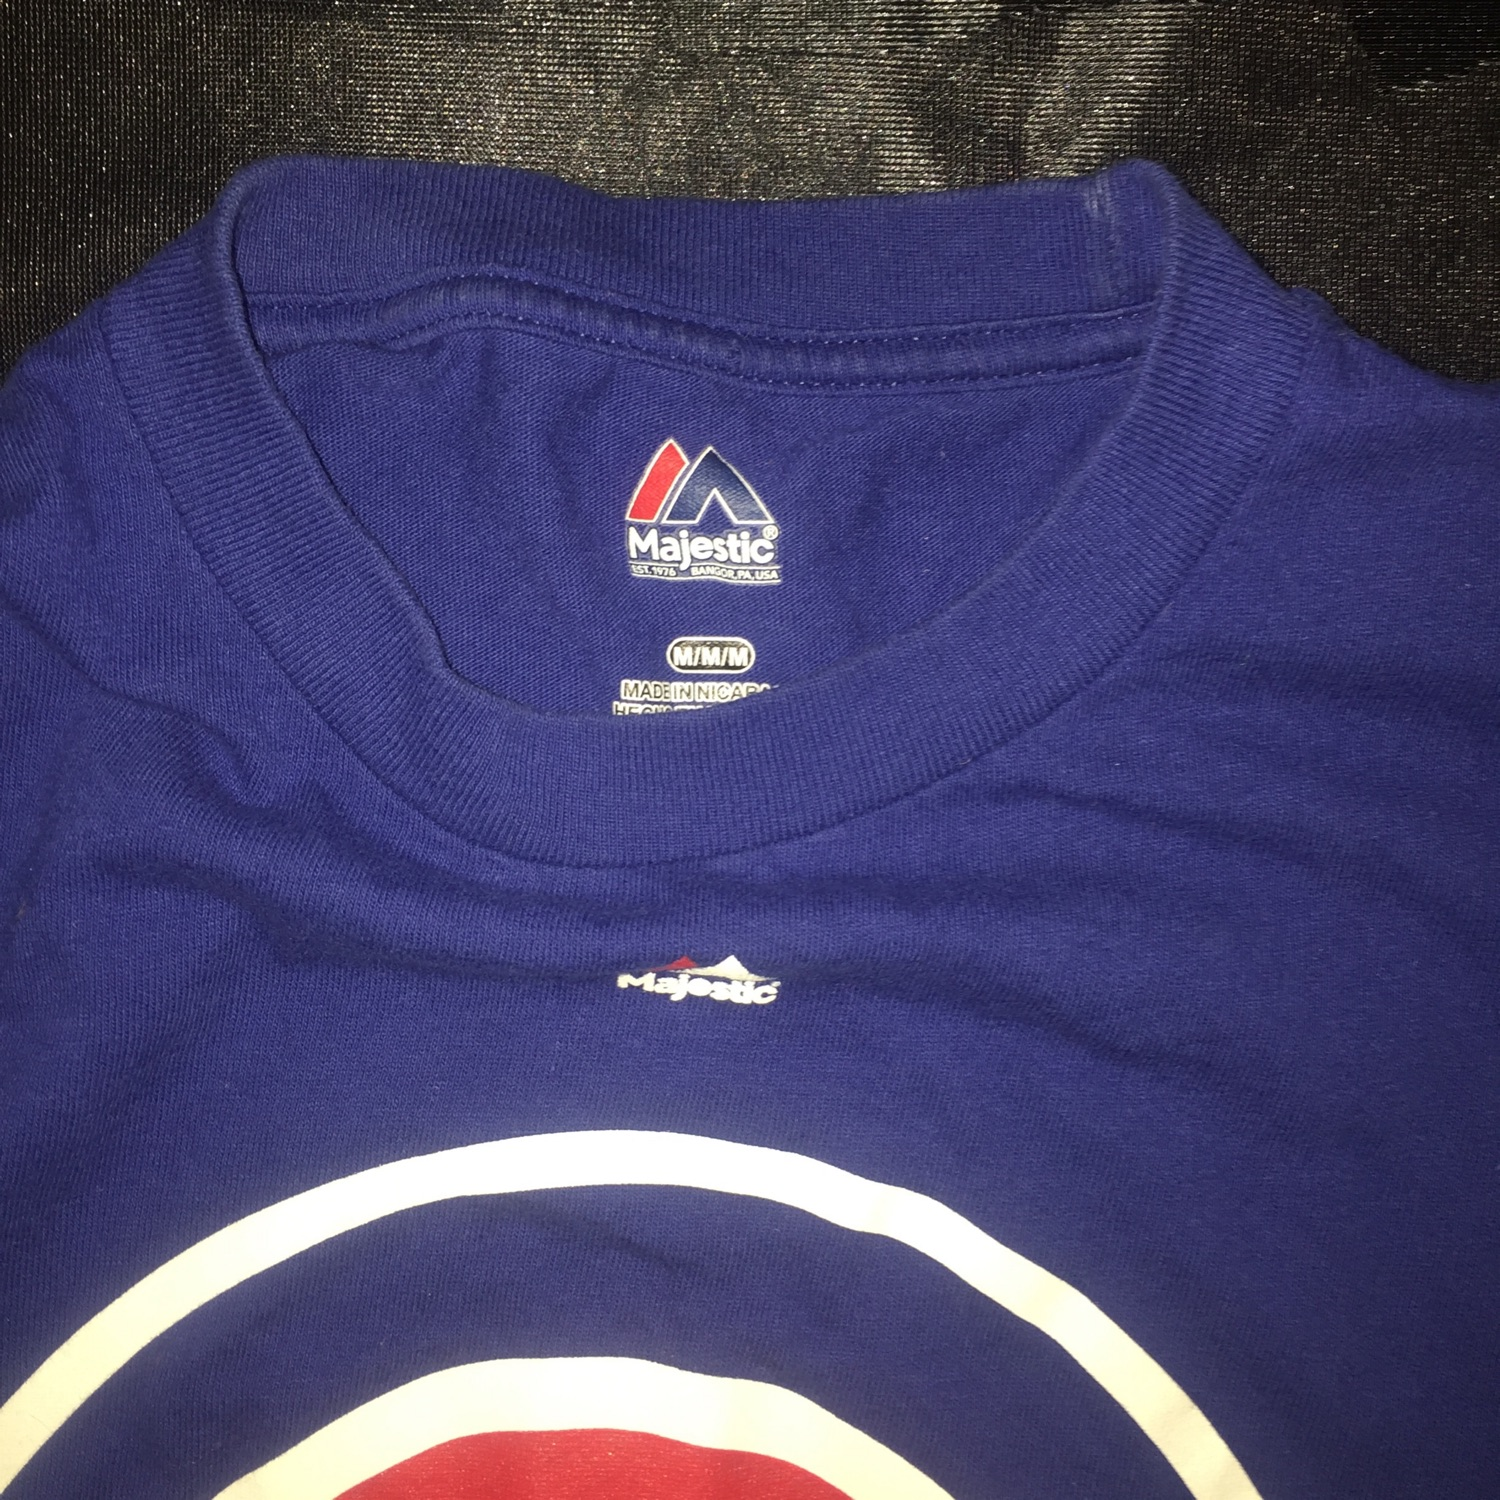 info for f0516 64a33 Majestic Chicago Cubs T-Shirt